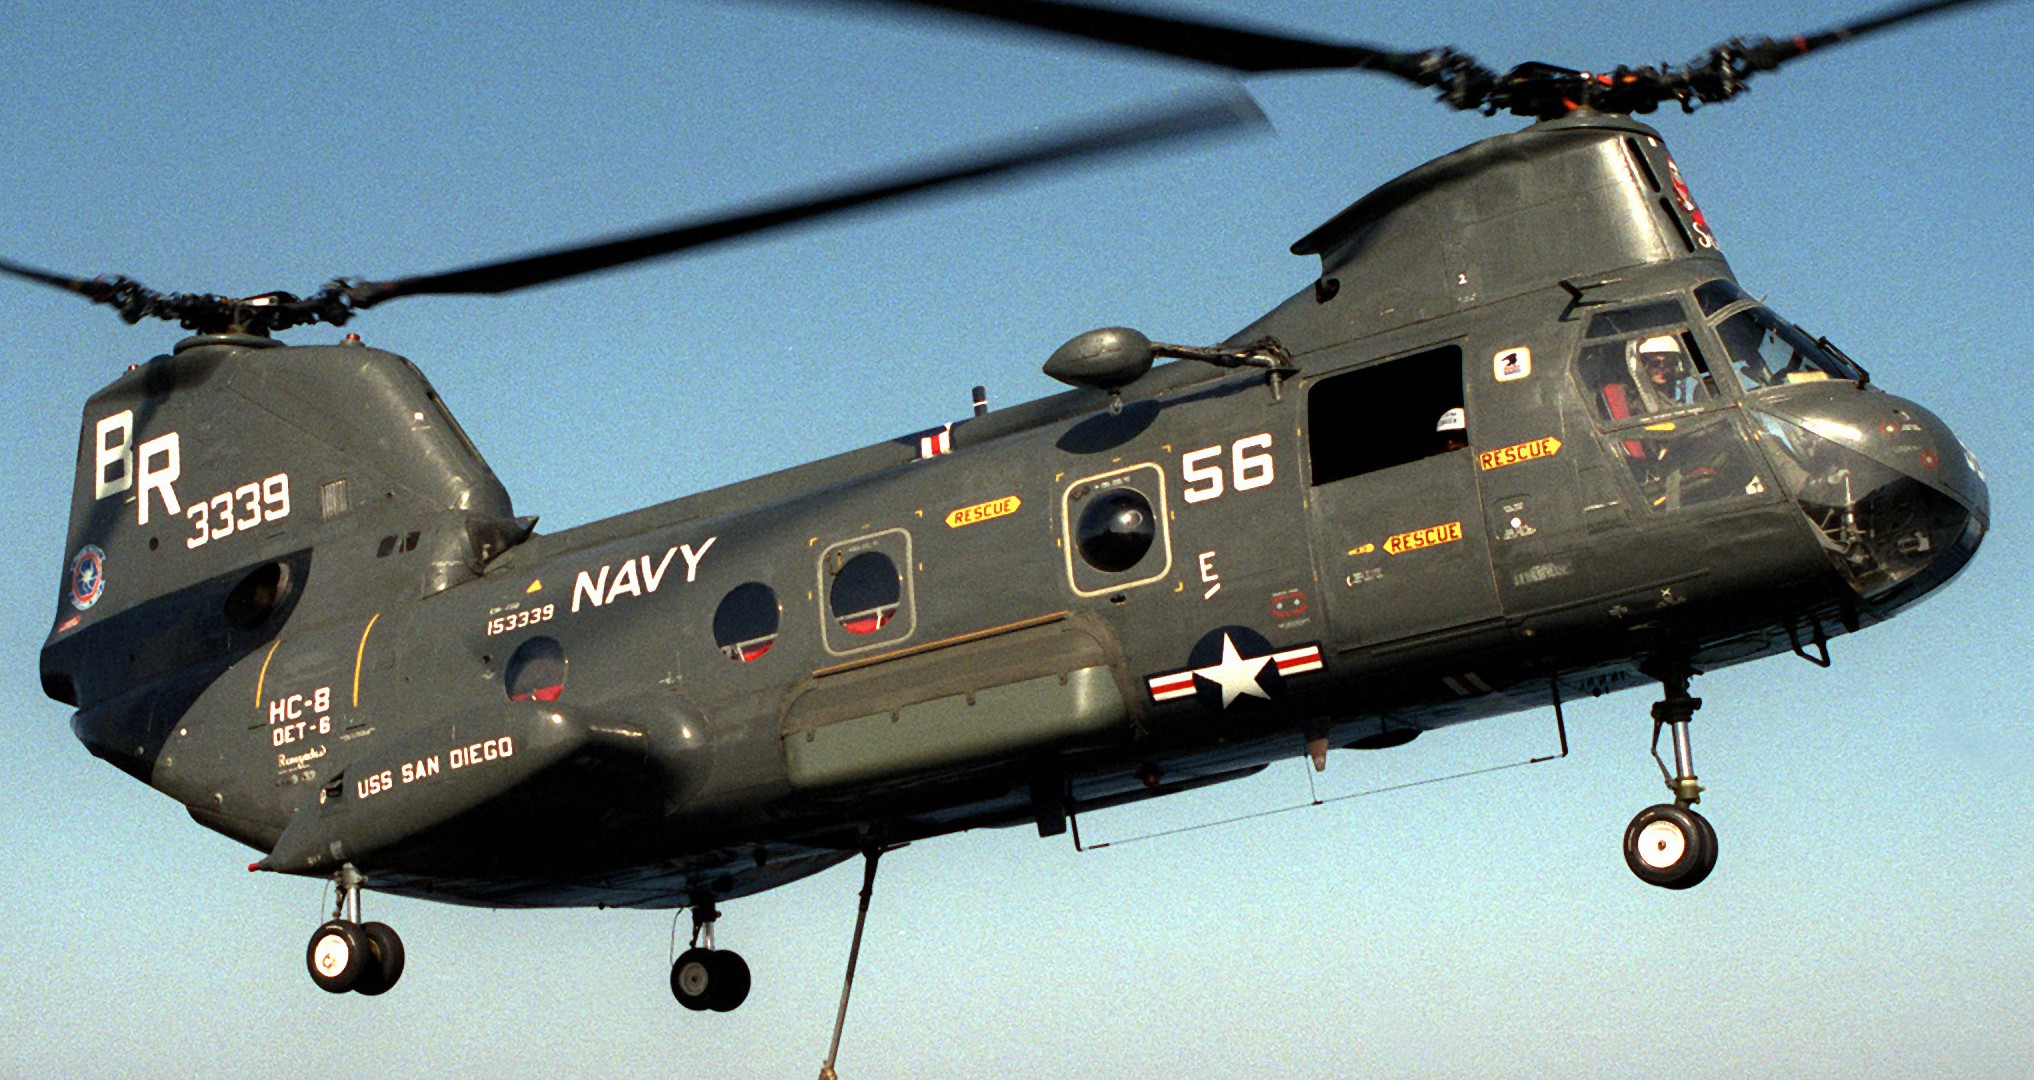 Hc 8 Dragon Whales Helicopter Combat Support Squadron Navy Ch 46 Sea Knight 43x